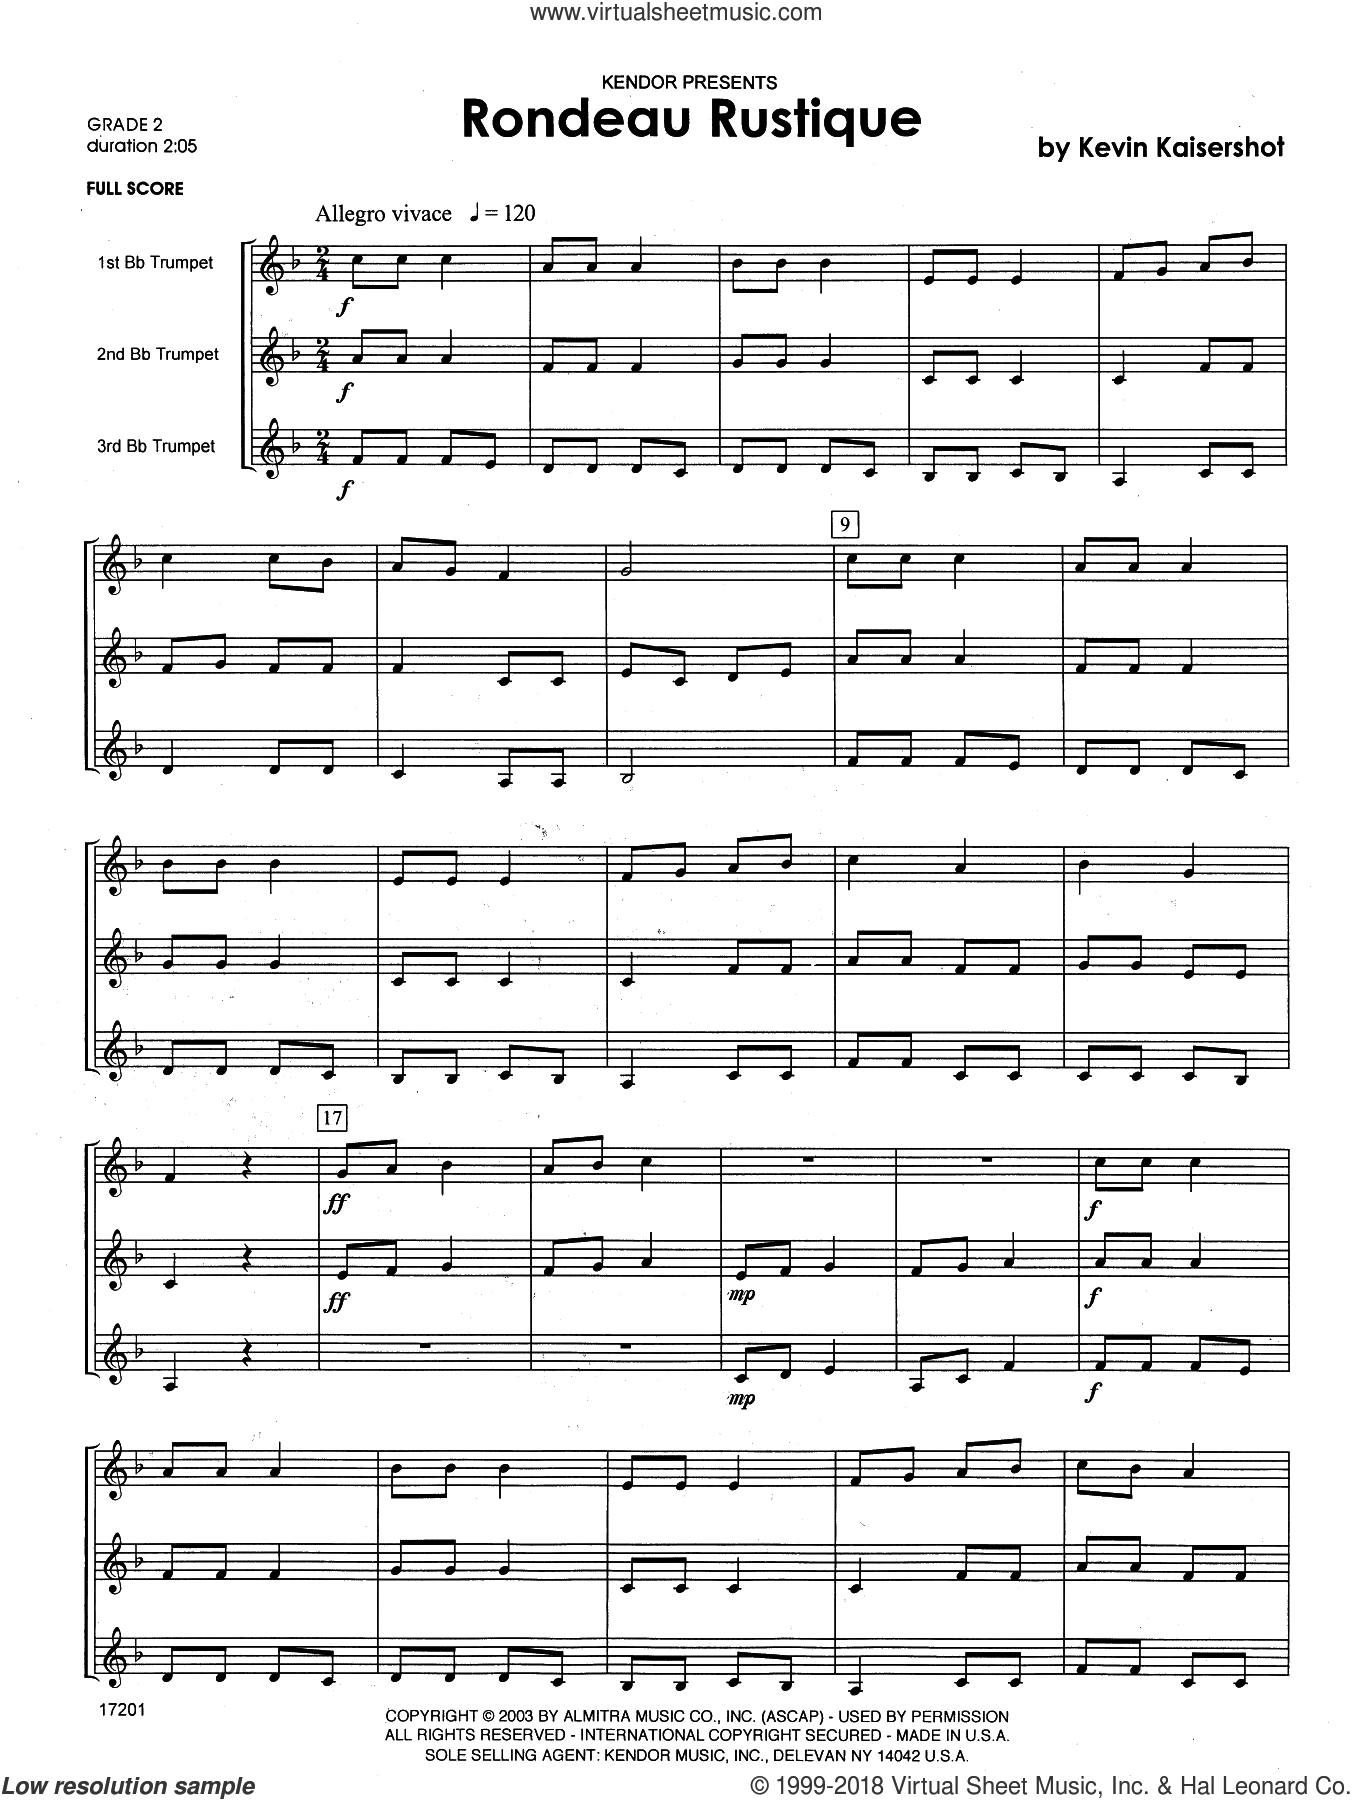 Kaisershot - Rondeau Rustique sheet music (complete collection) for trumpet  trio